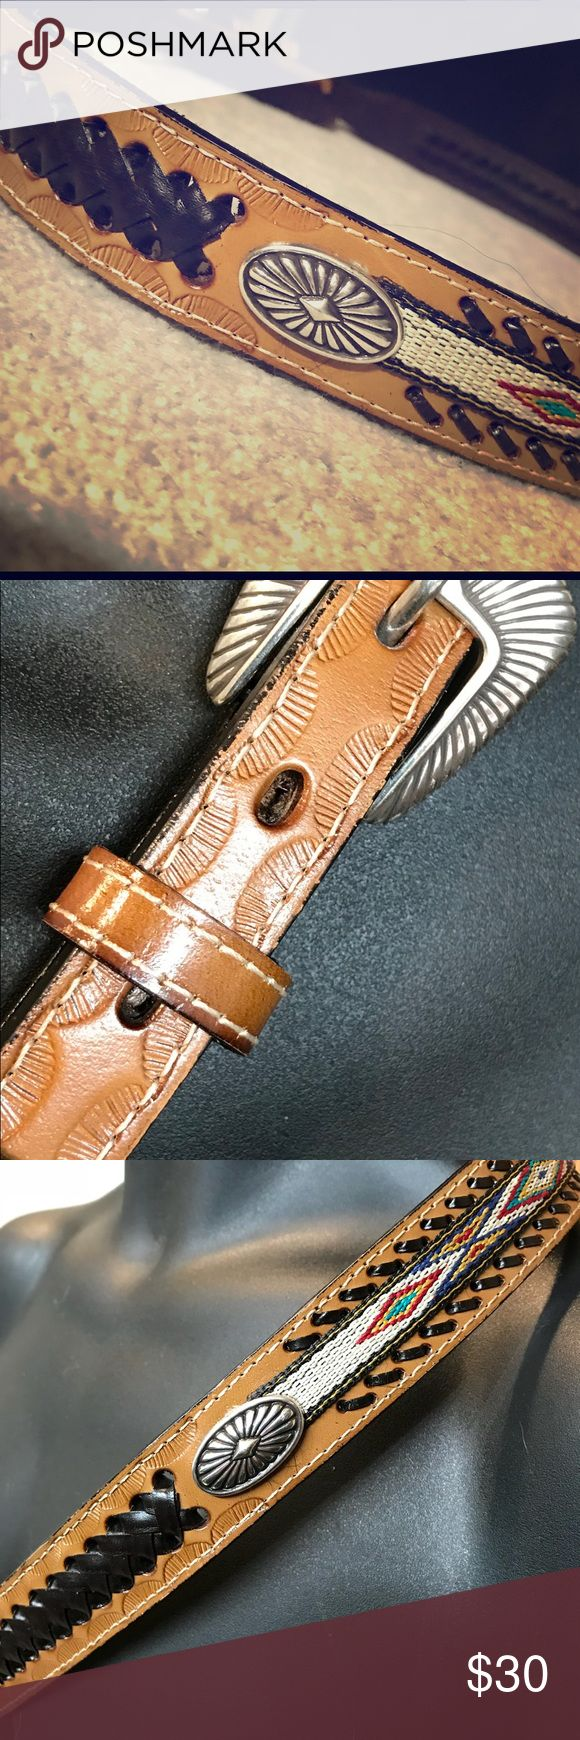 """Cowgirl Western Leather Belt Cowgirl up! Genuine leather western style belt with silver buckle. 43"""" long & 1"""" wide in never-worn, like-new condition. Accessories Belts"""